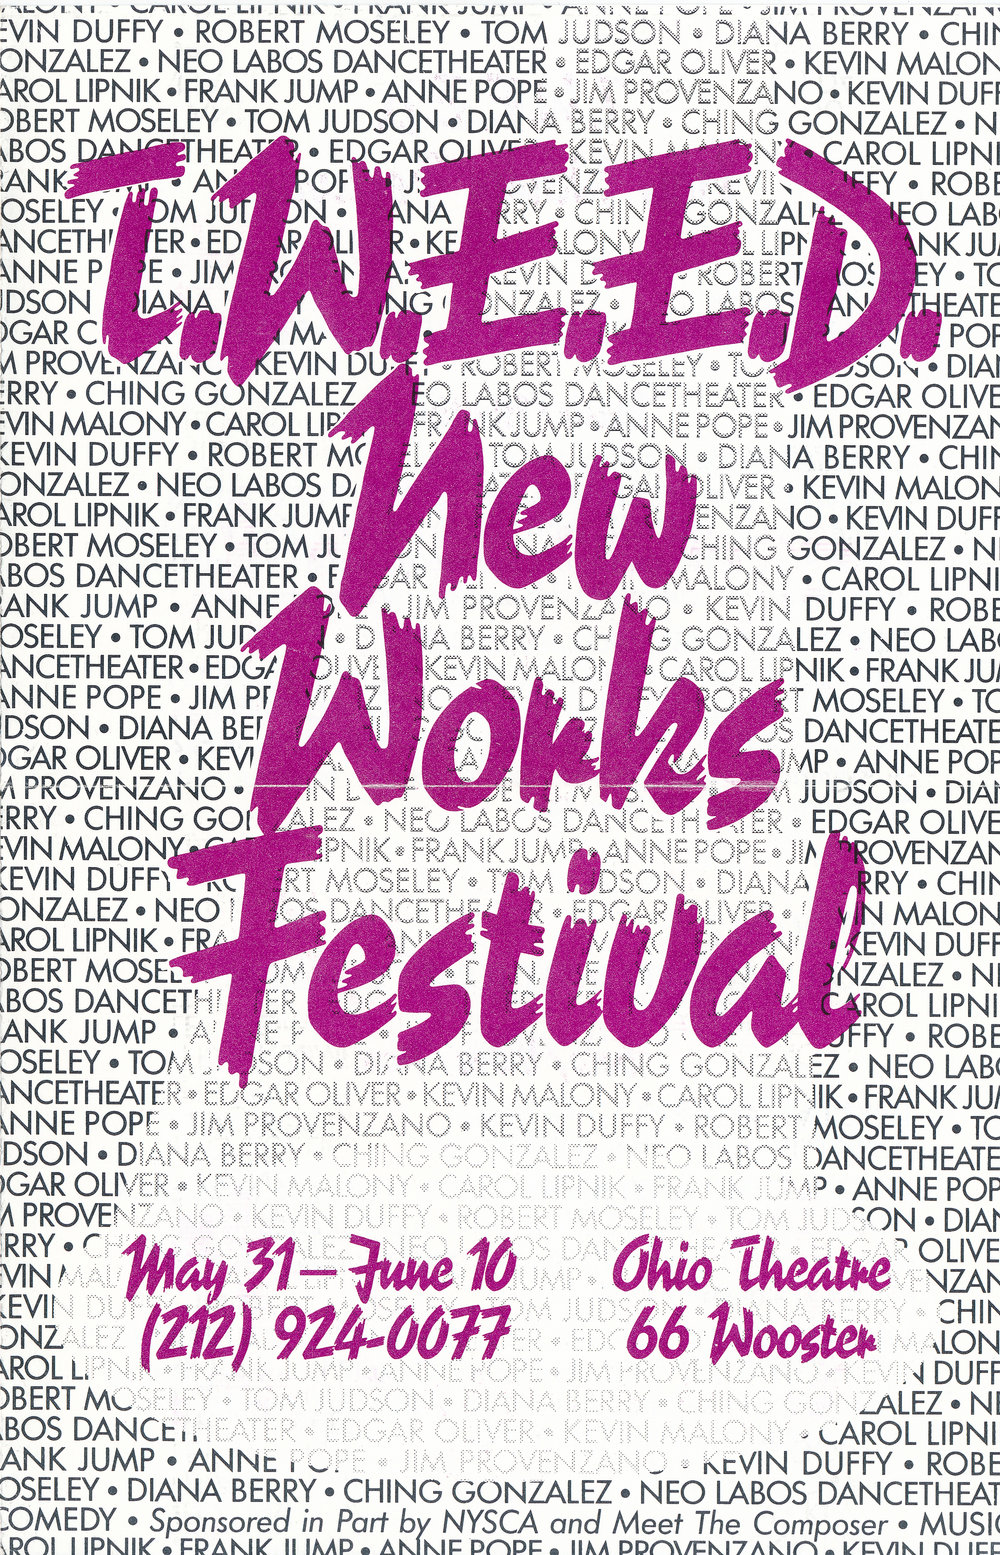 TWEED NEW WORKS FESTIVAL #7, 1990 - OHIO THEATERTom Judson, The Blue PianoKevin Malony & Carol Lipnik, PornsongspielJim Provenzano, ResumeFrank Jump & Anne Pope, Today's SpecialsDiana Berry, Ginella Gillette's Cozy CornerNeo Labos Dance Theater, Jose's TextbookChing Gonzalez, Ala AlaRobert Moseley, The InvitationKevin Duffy, The Blacksmiths at HomeEdgar Oliver, The Swimming Pool